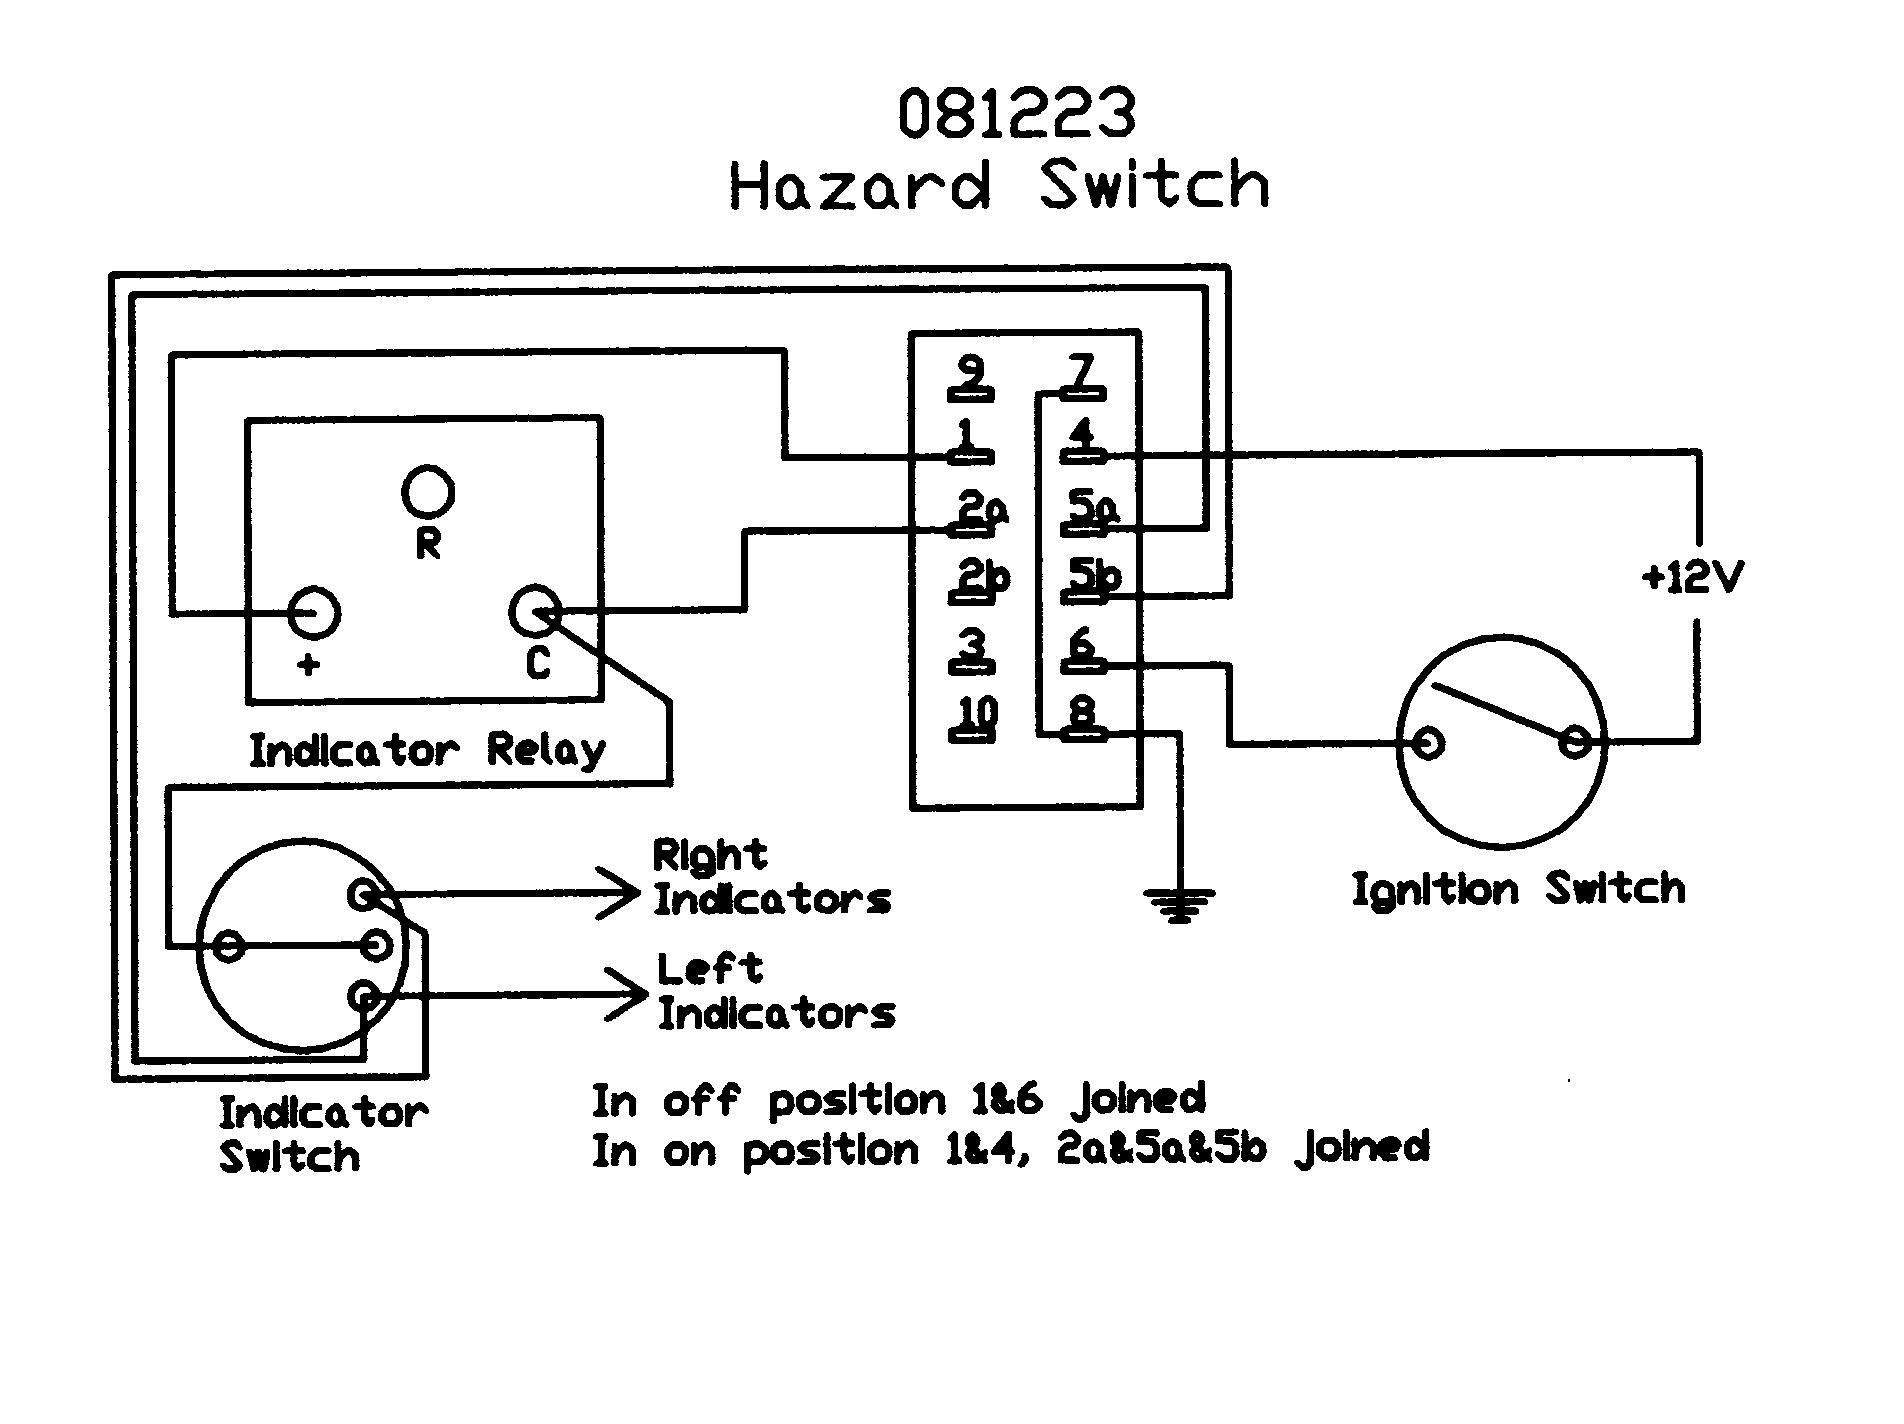 Toggle Switch Wiring Diagram Free Download Great Installation Of Rotary Spst Warn Rocker Simple Diagrams Rh 22 Studio011 De 3 Way